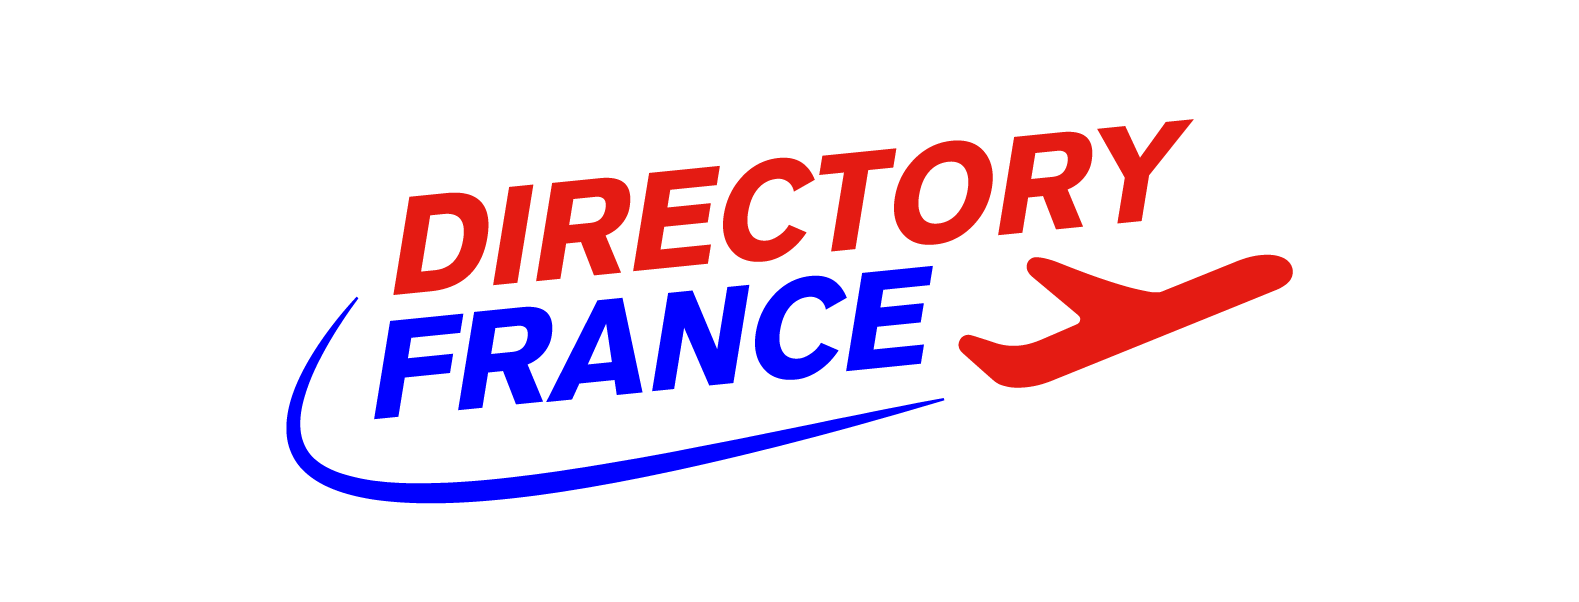 Directory France logo